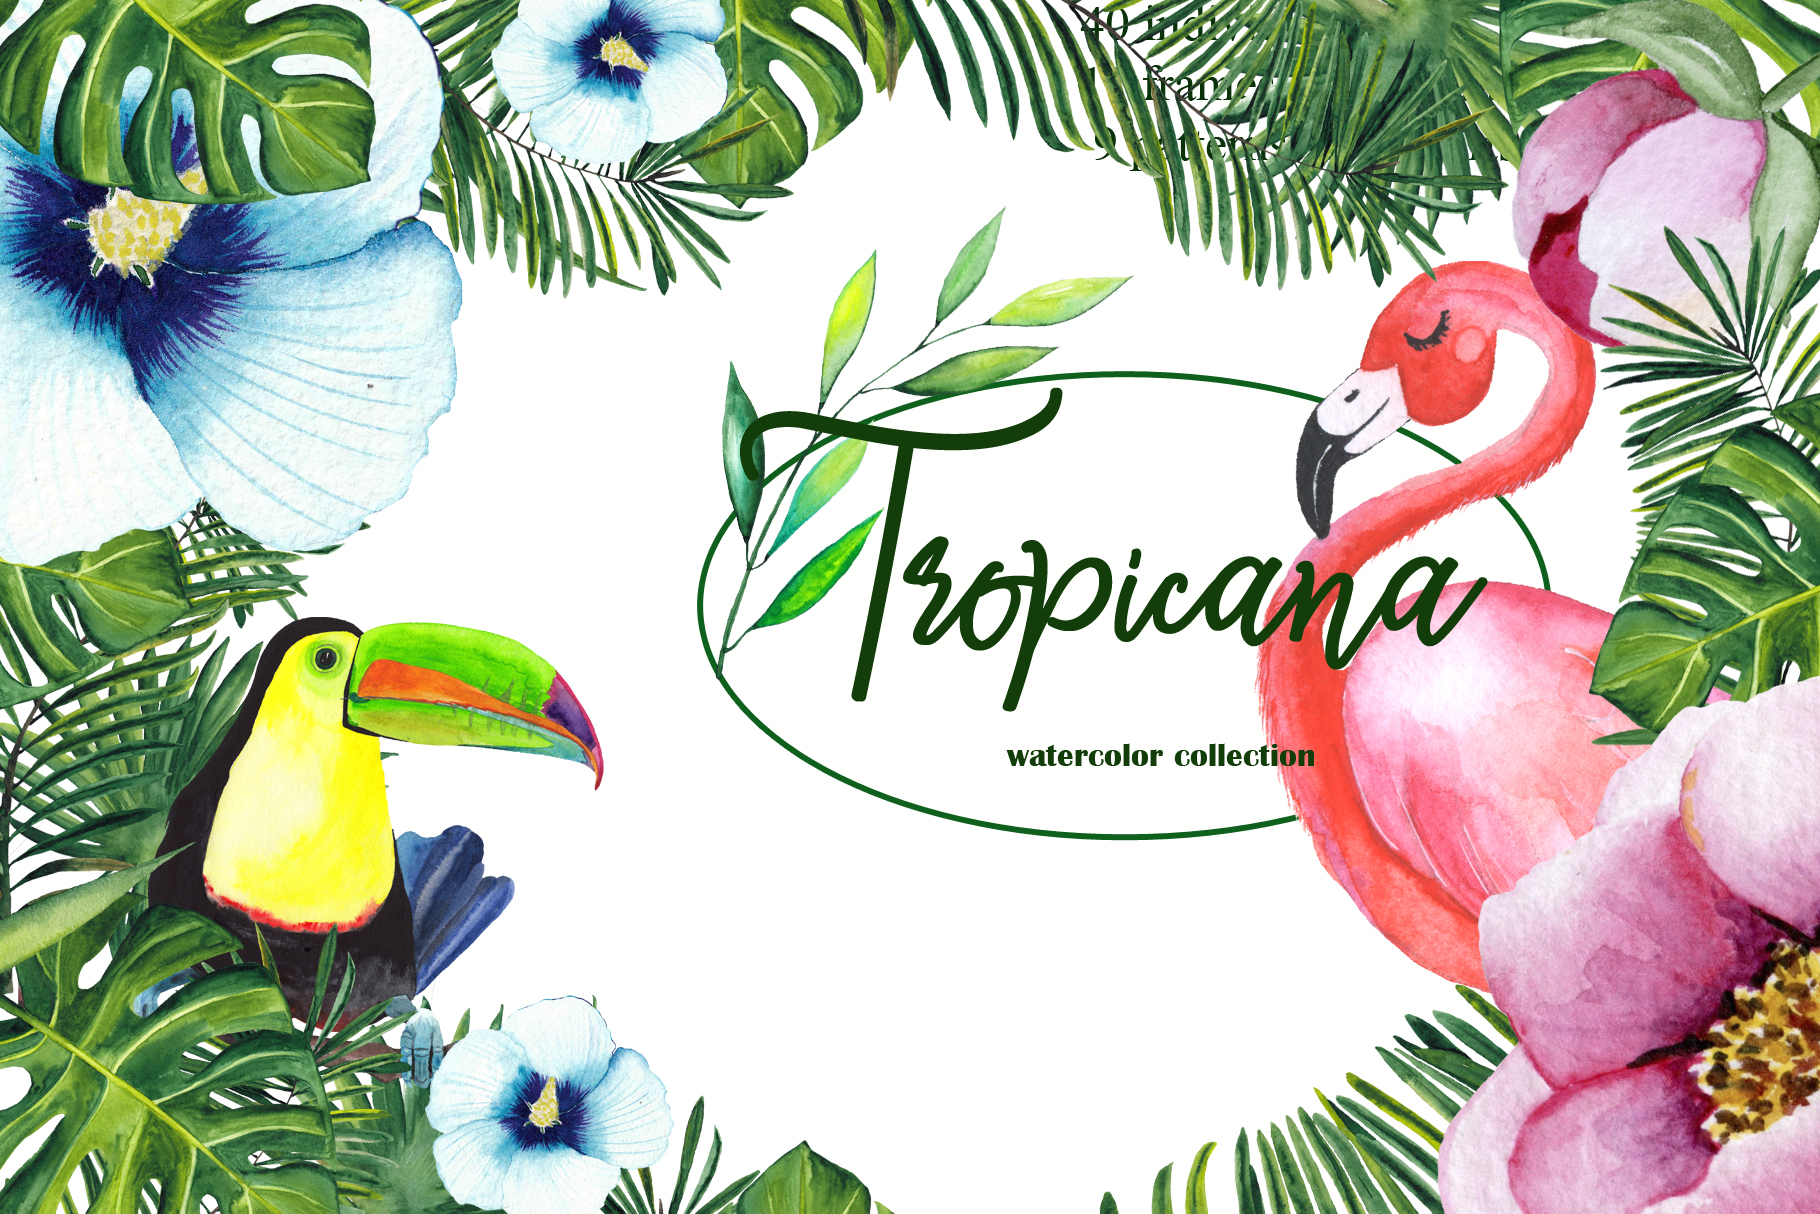 Tropical watercolor collection example image 1